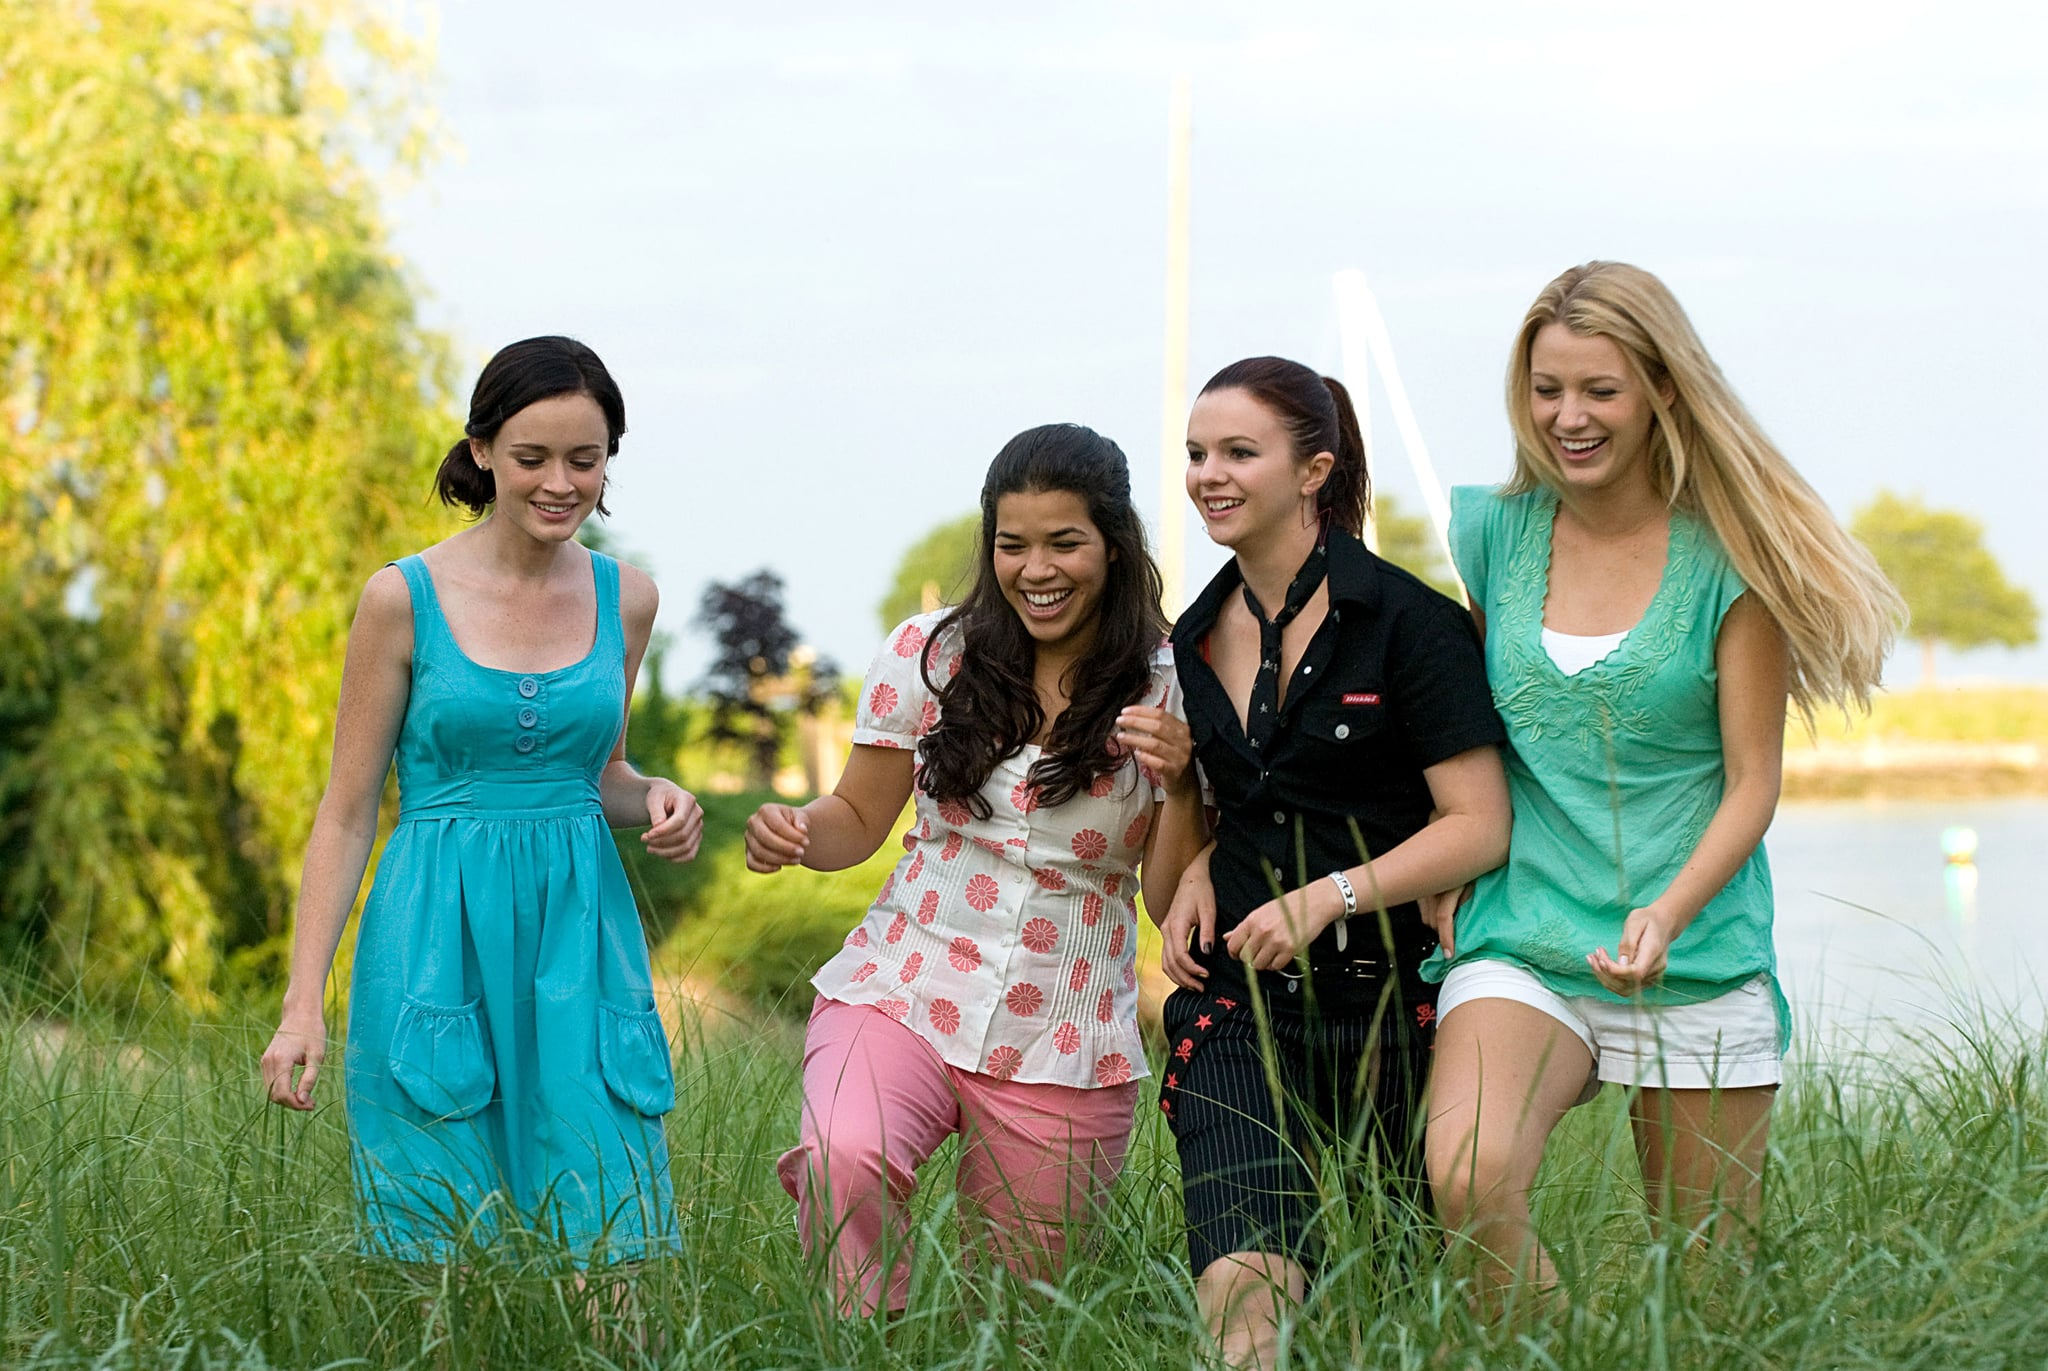 THE SISTERHOOD OF THE TRAVELING PANTS 2, Alexis Bledel, America Ferrera, Amber Tamblyn, Blake Lively, 2008. Warner Bros./courtesy Everett Collection